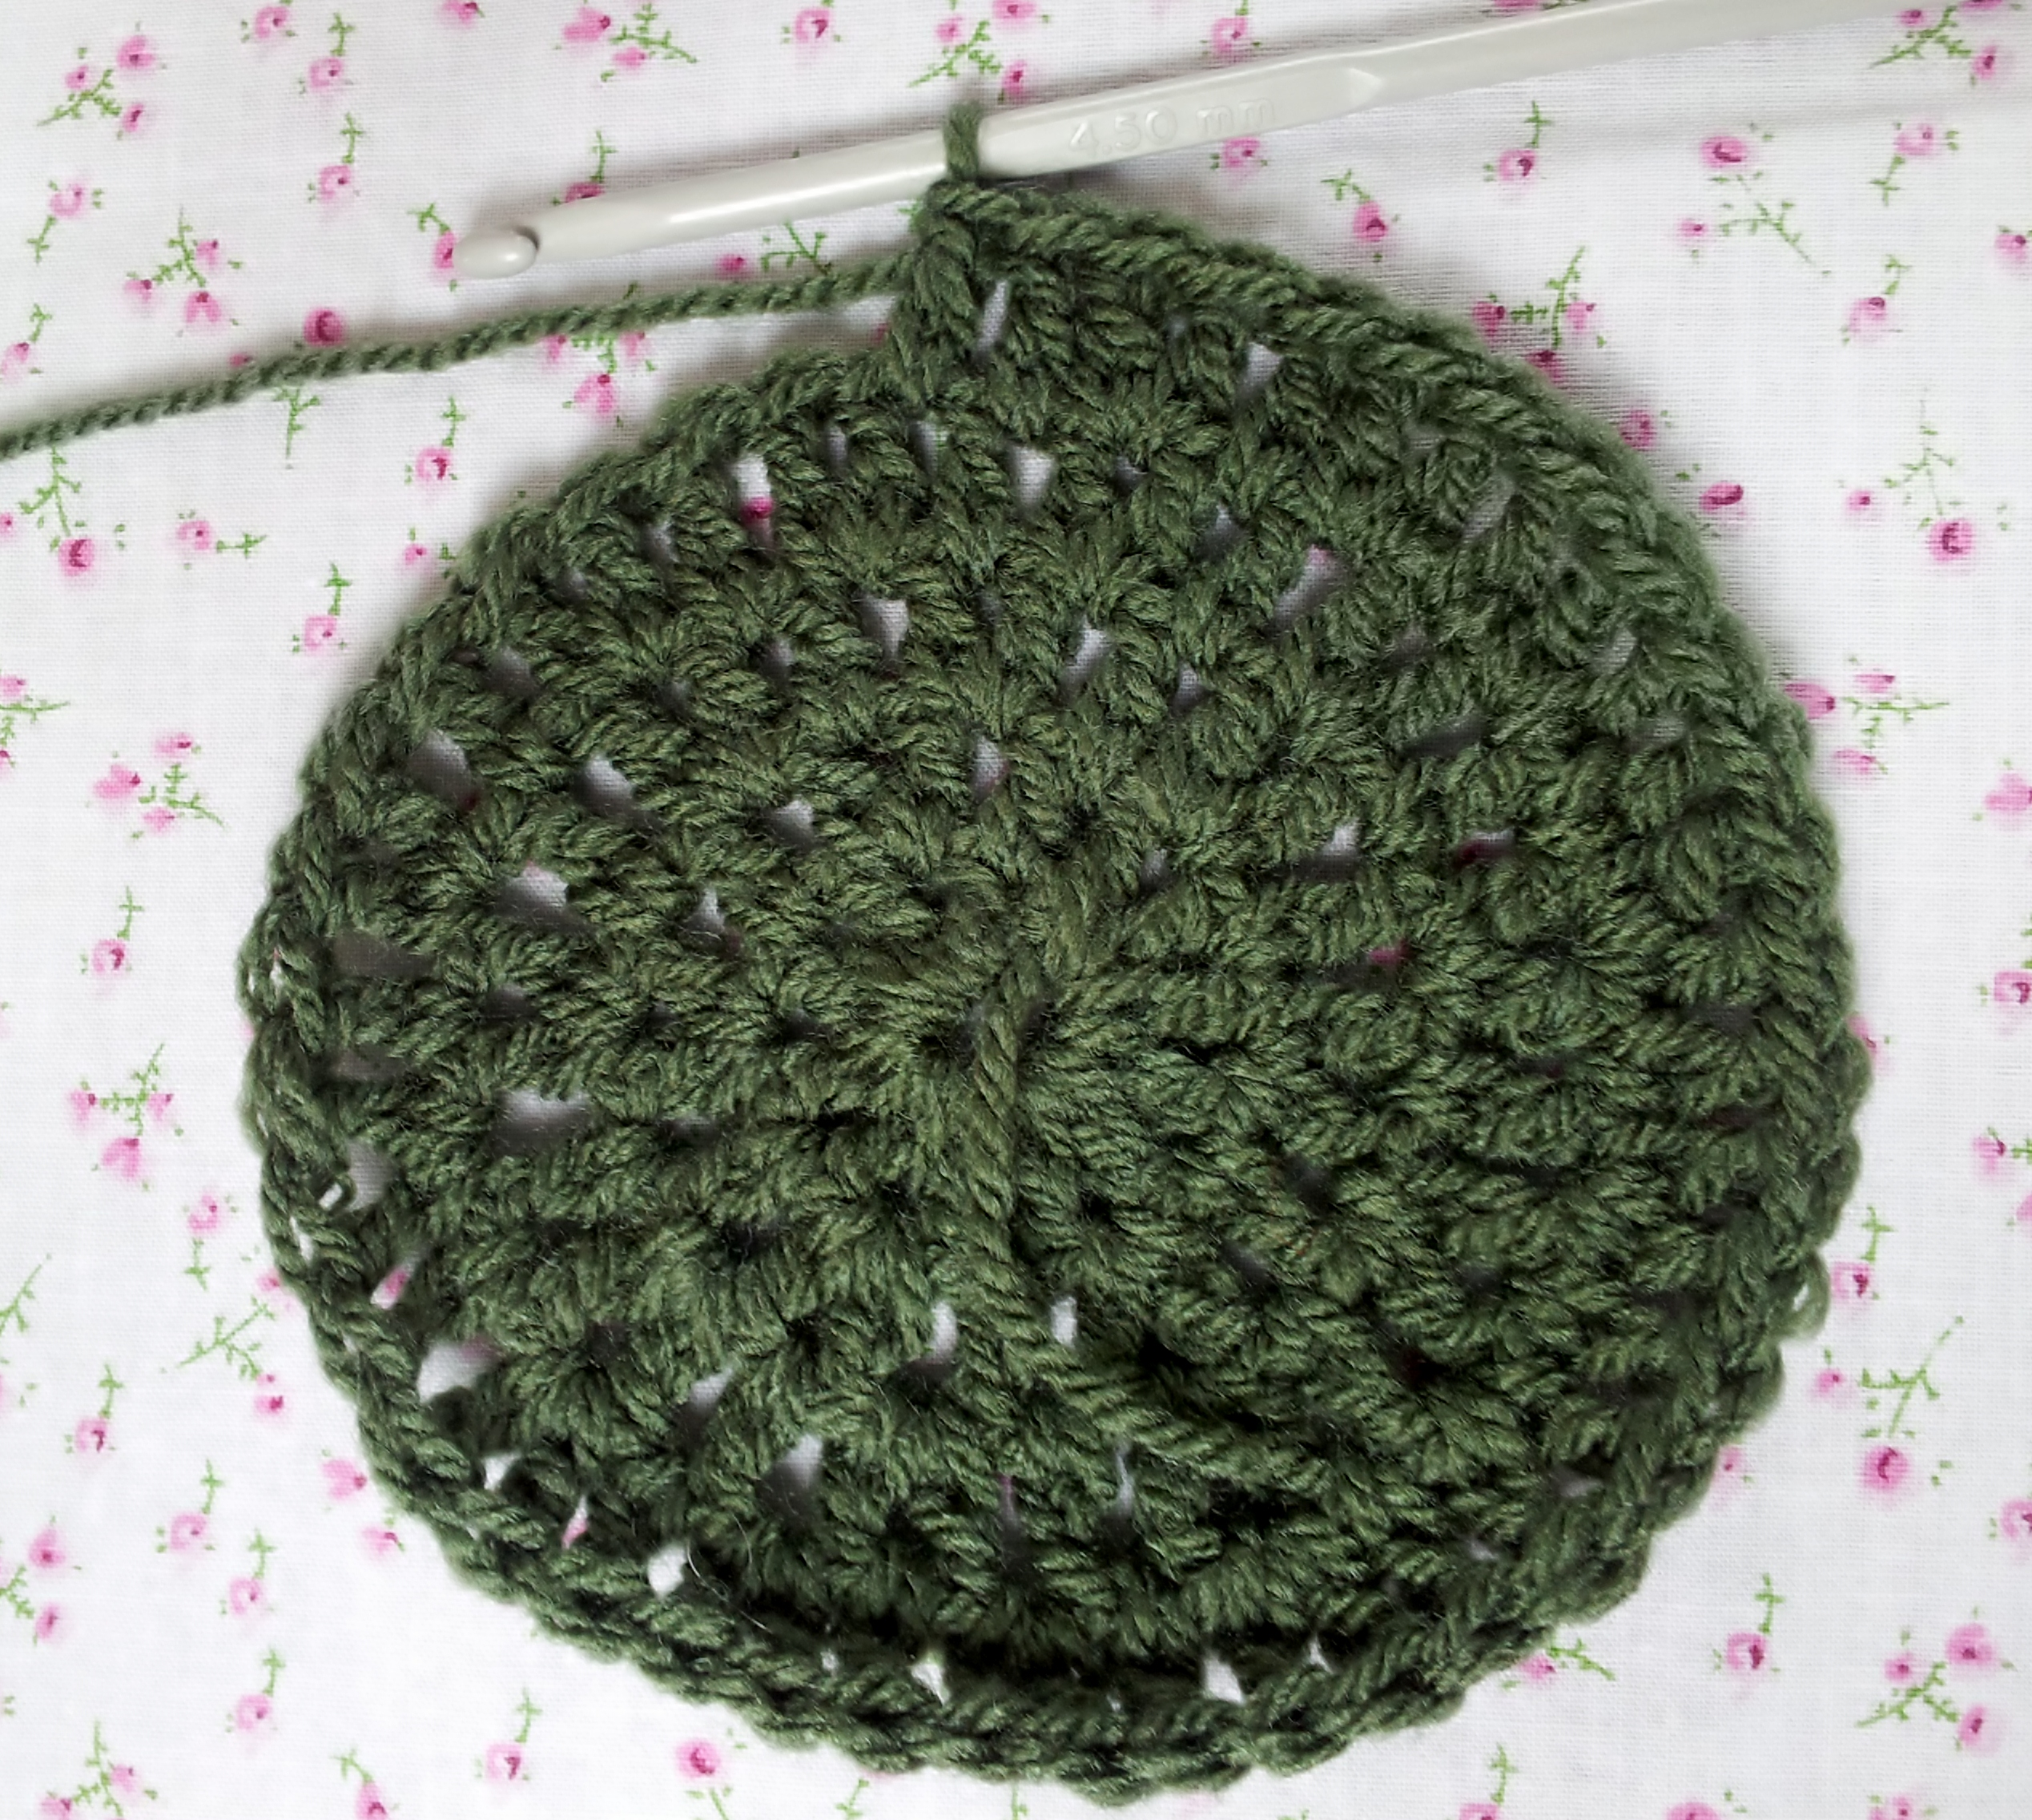 Crocheting A Hat : Crochet hat round 4 2 to 1